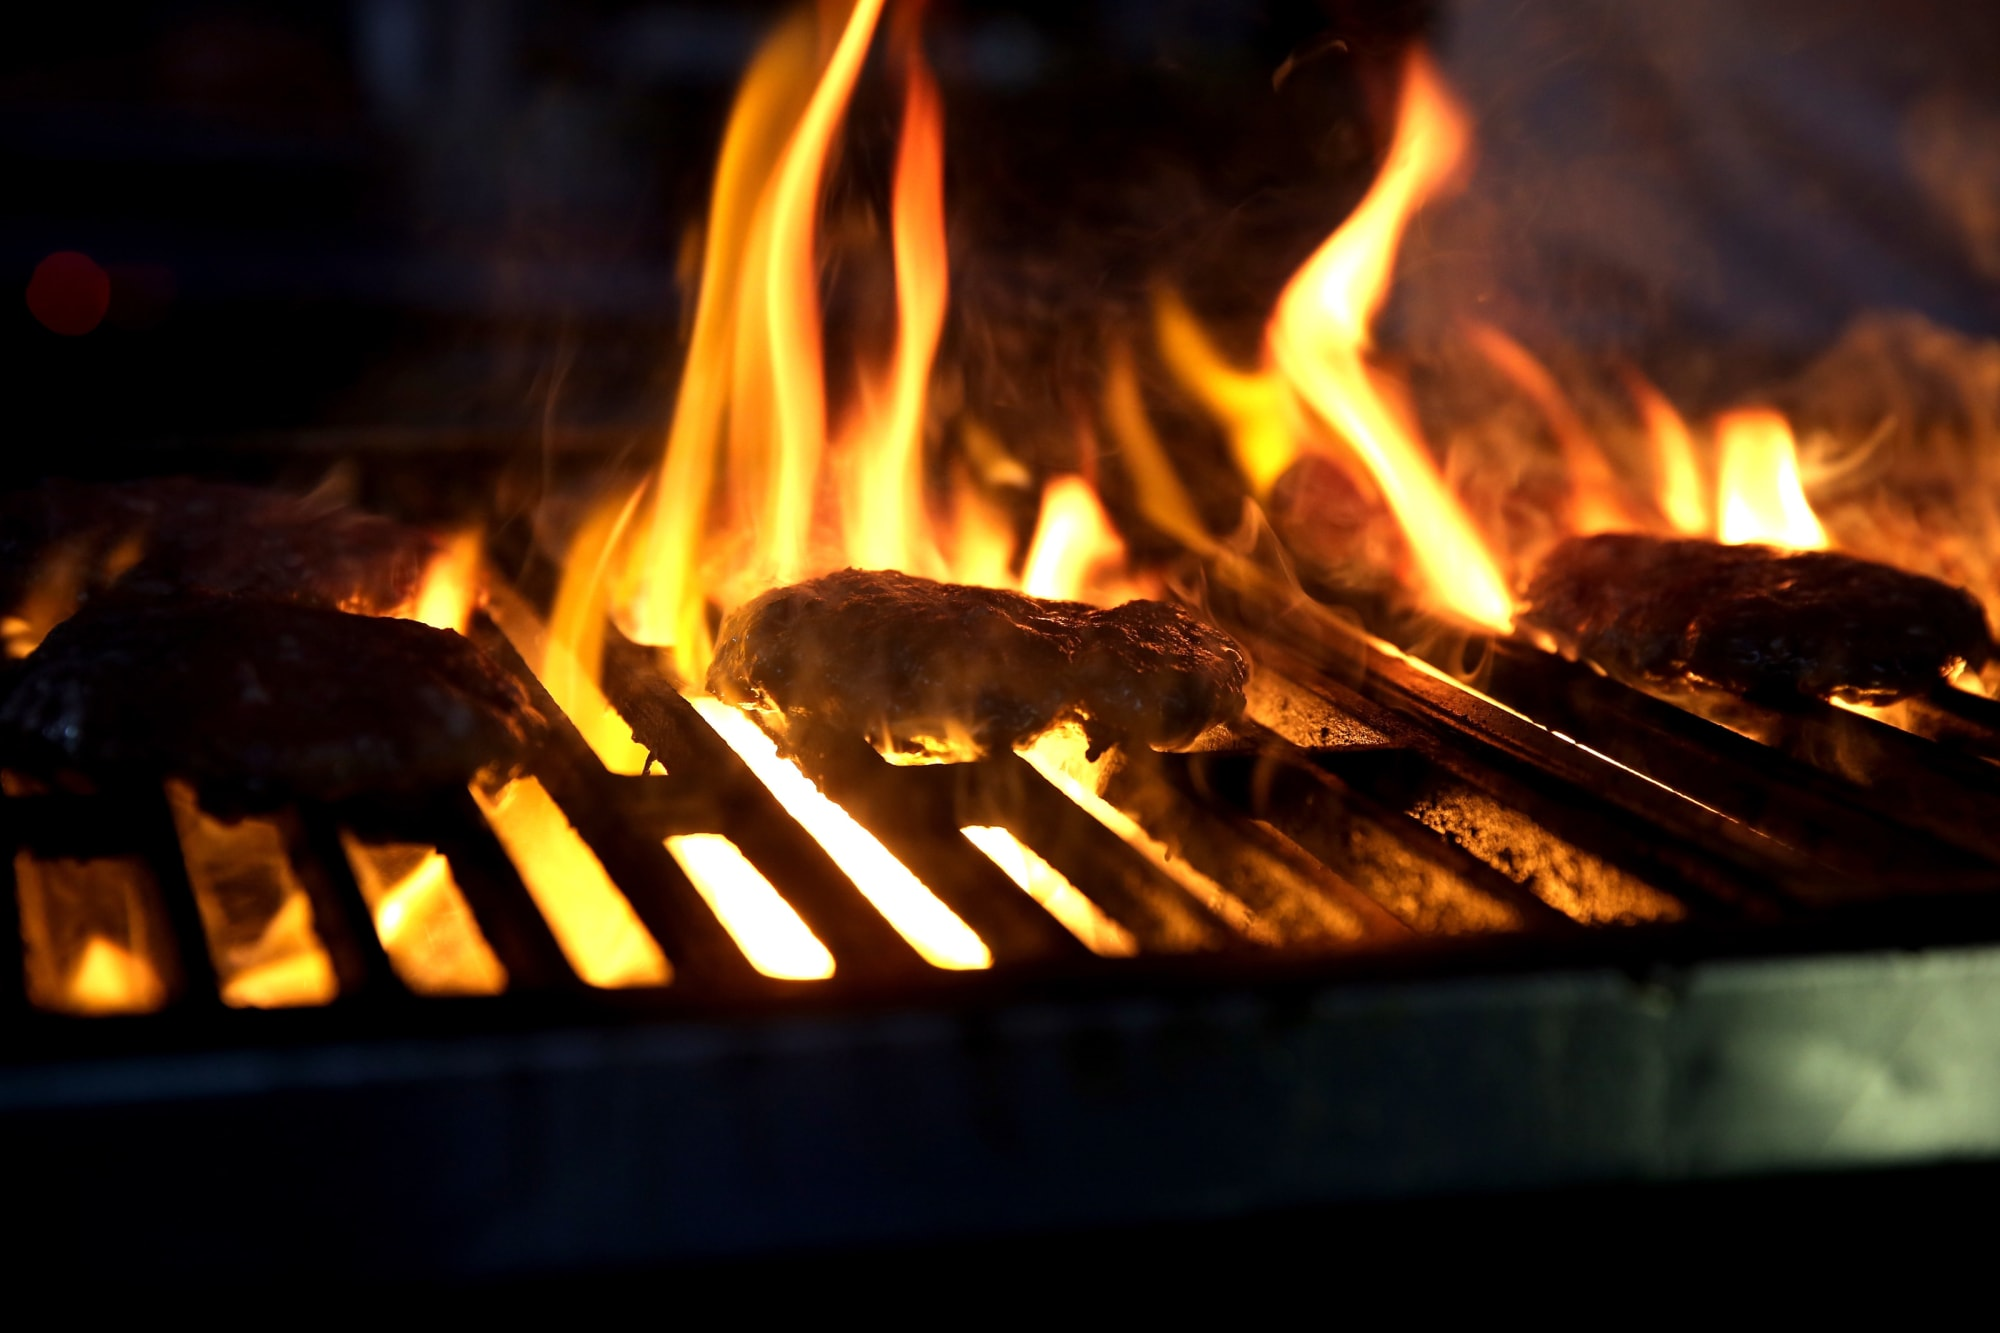 Grilling the most delicious burger is all about controlling the variables